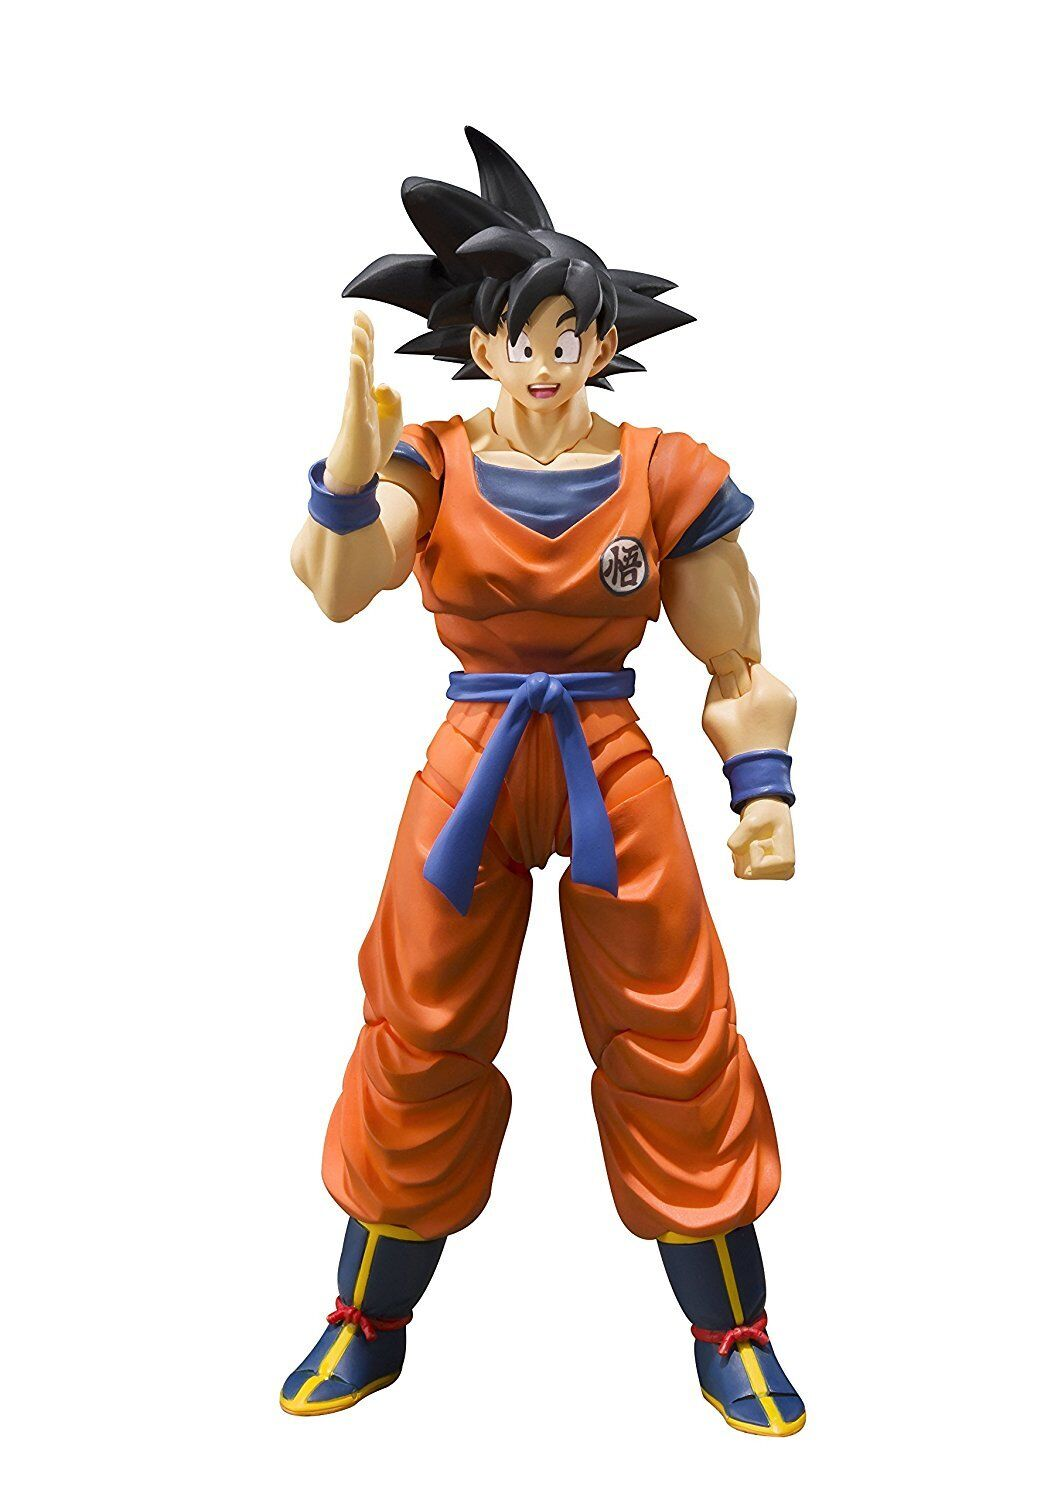 S.H.Figuarts DRAGONBALL Z Son Goku Saiyan Grown On Earth Action Figure W T